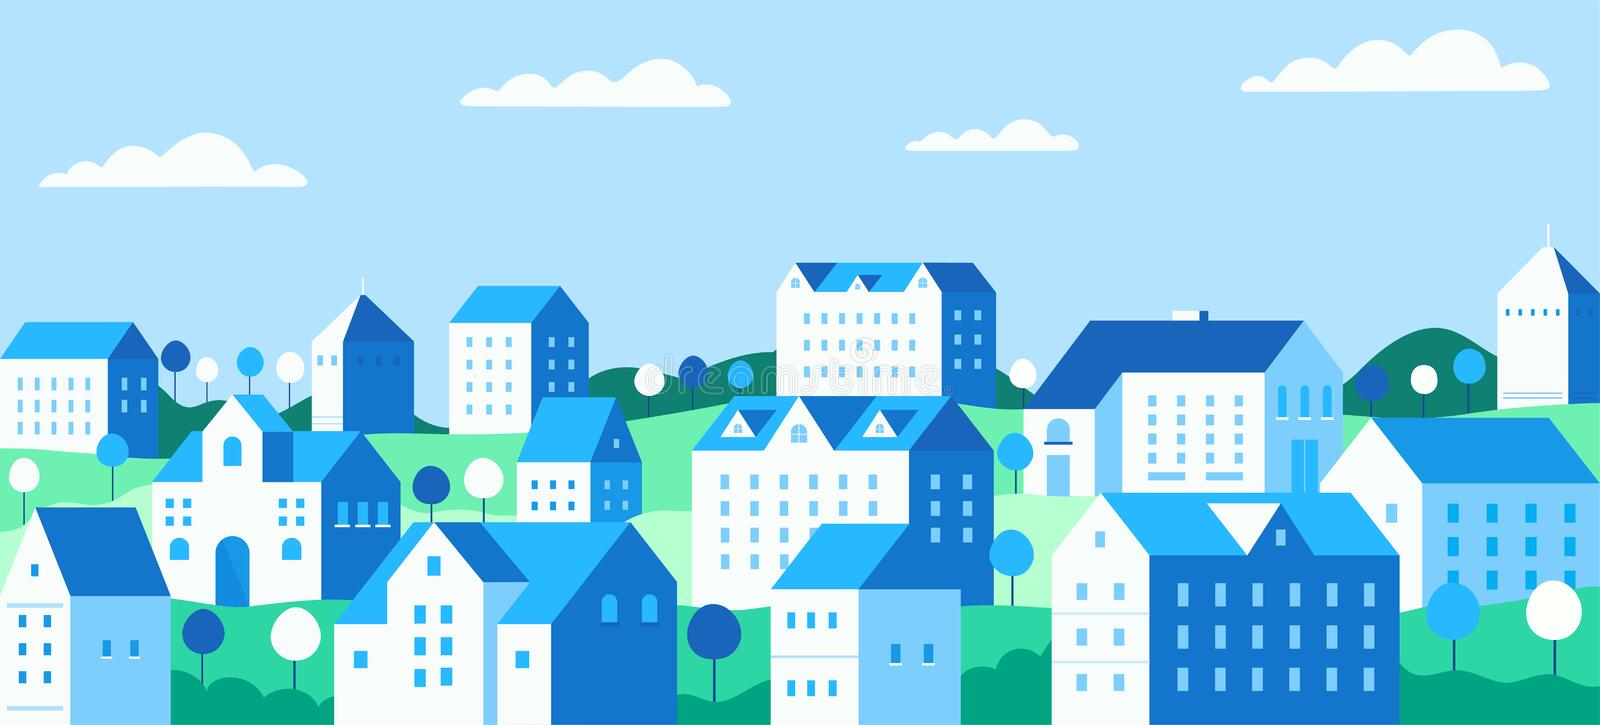 Cityscape with buildings, private houses and trees against the background mountains and hills. Concept suburban life stock illustration